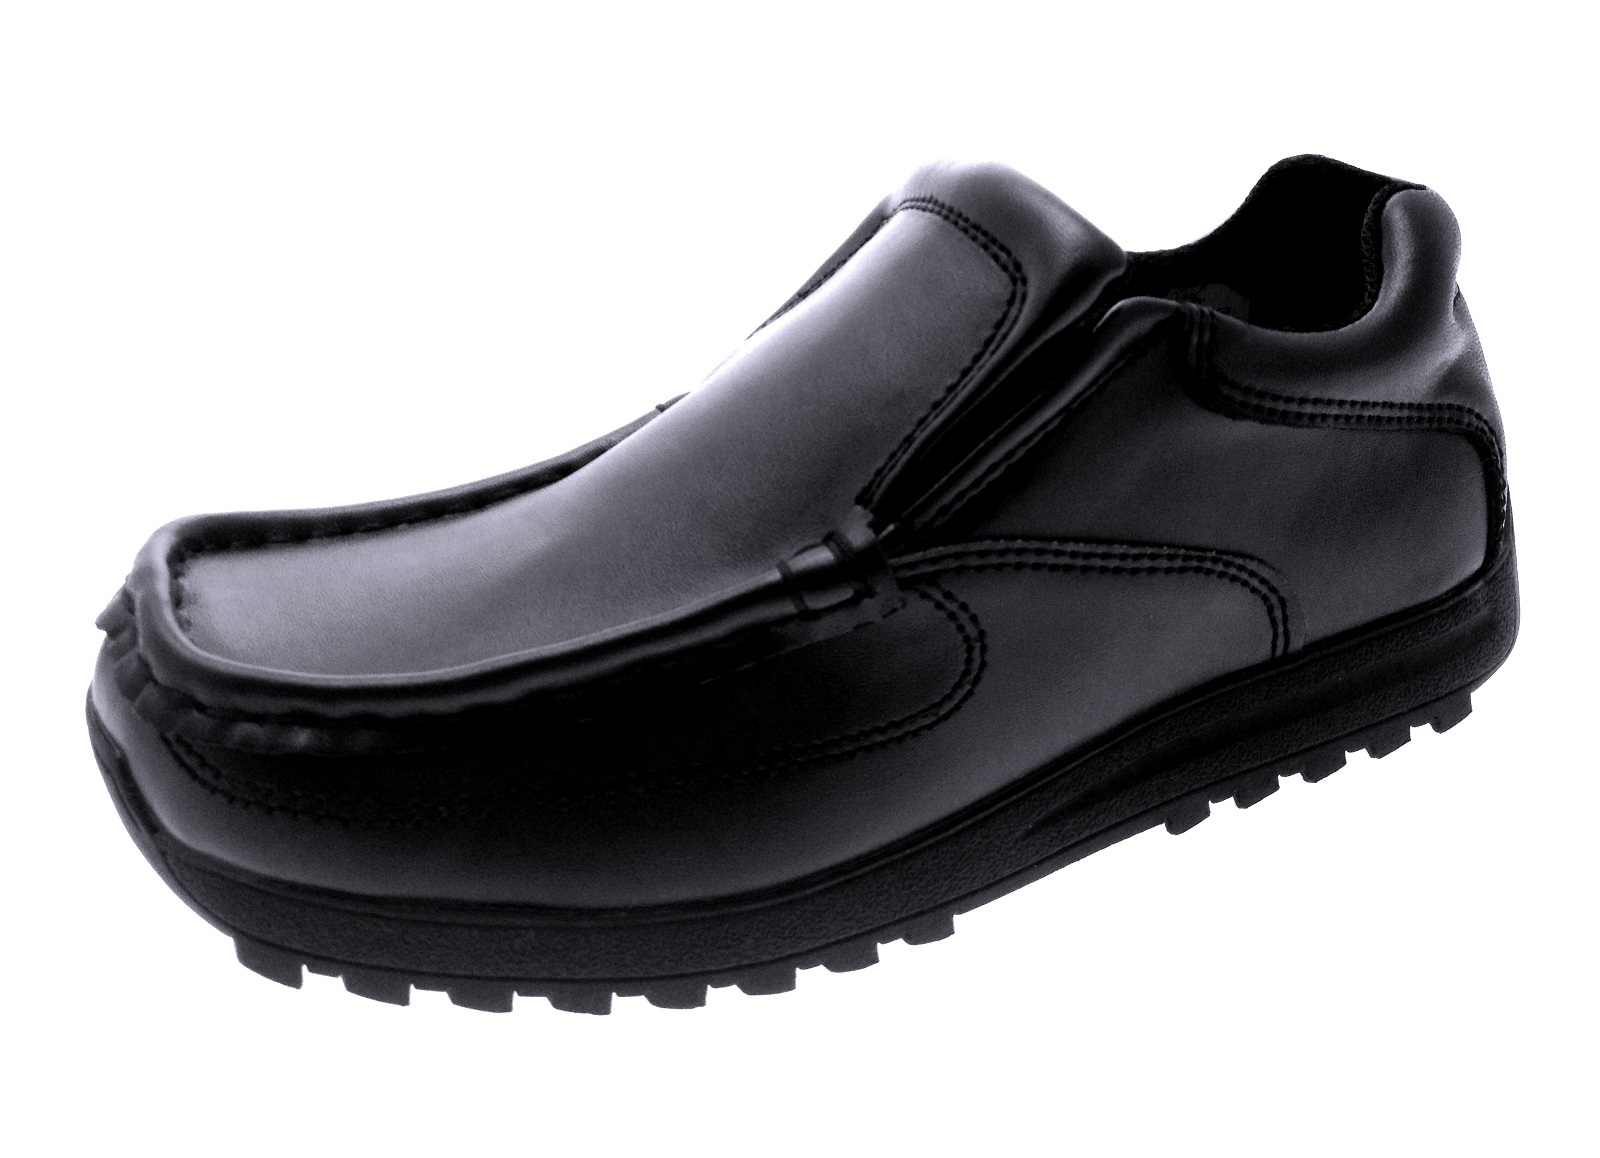 b48de746bb2 Mens Boys Kids Black Leather School Shoes Work Loafers Formal Shoes Size UK  2-11